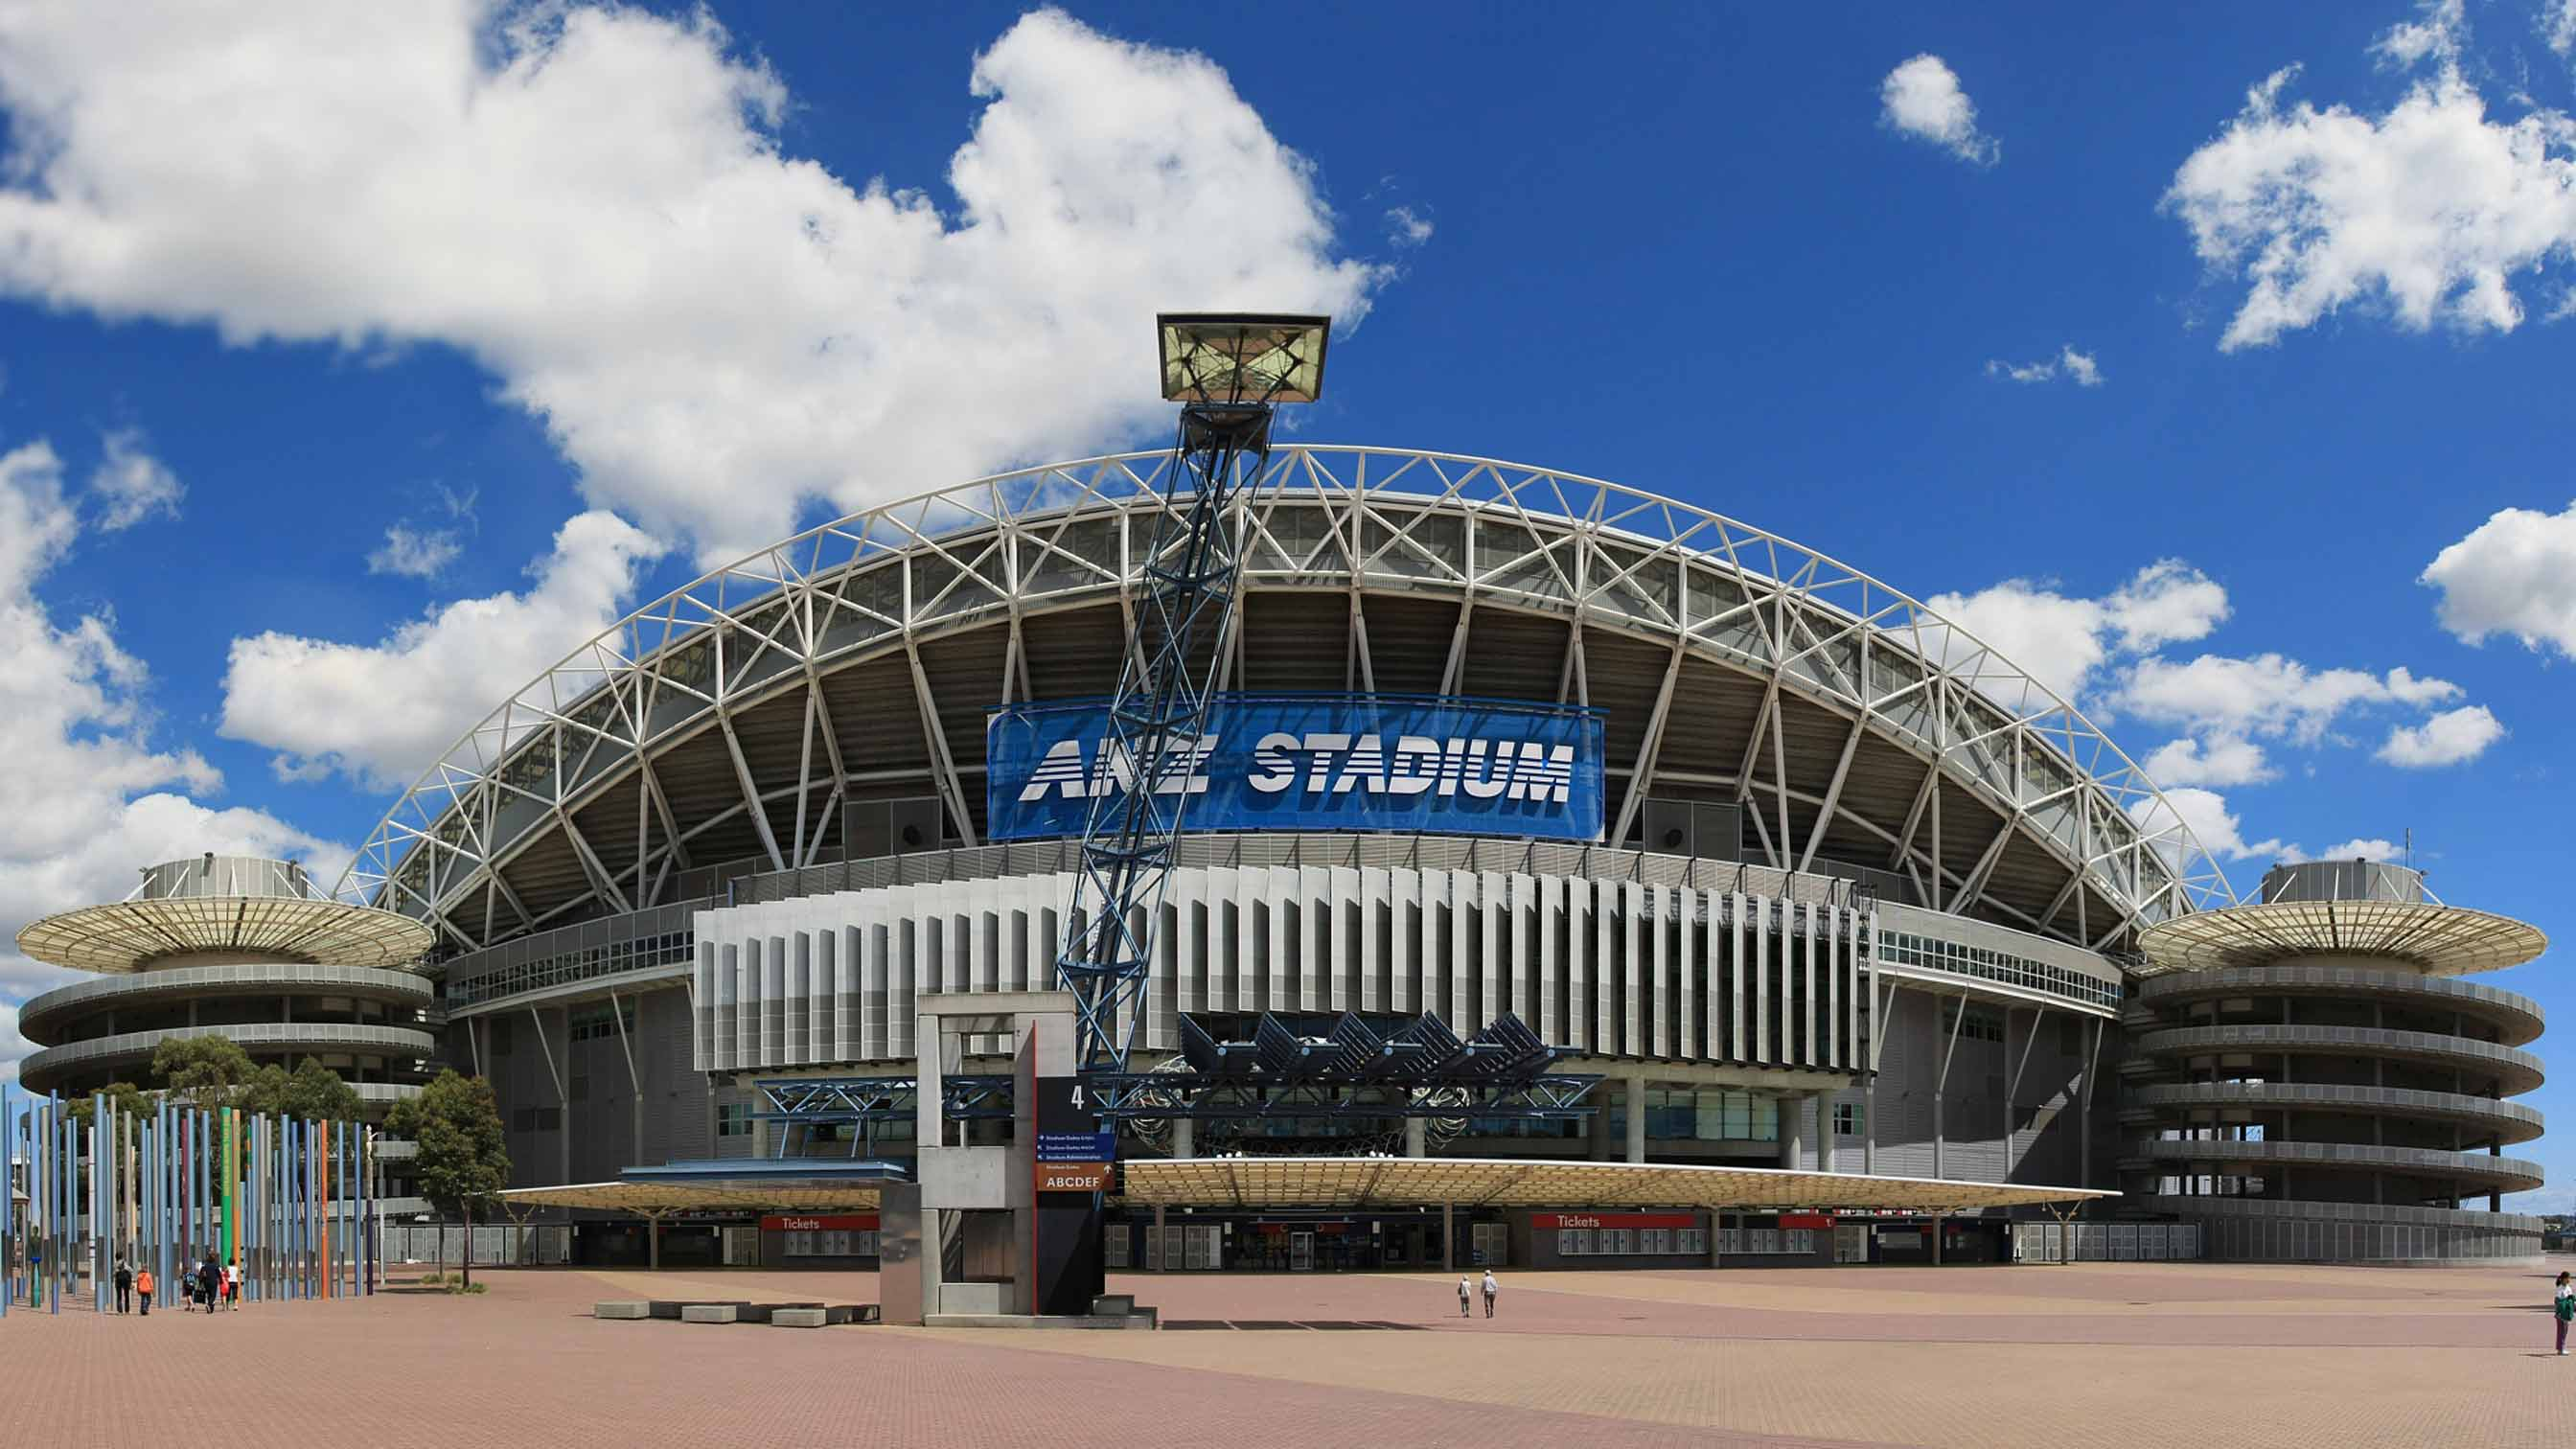 Exterior of ANZ stadium in Australia